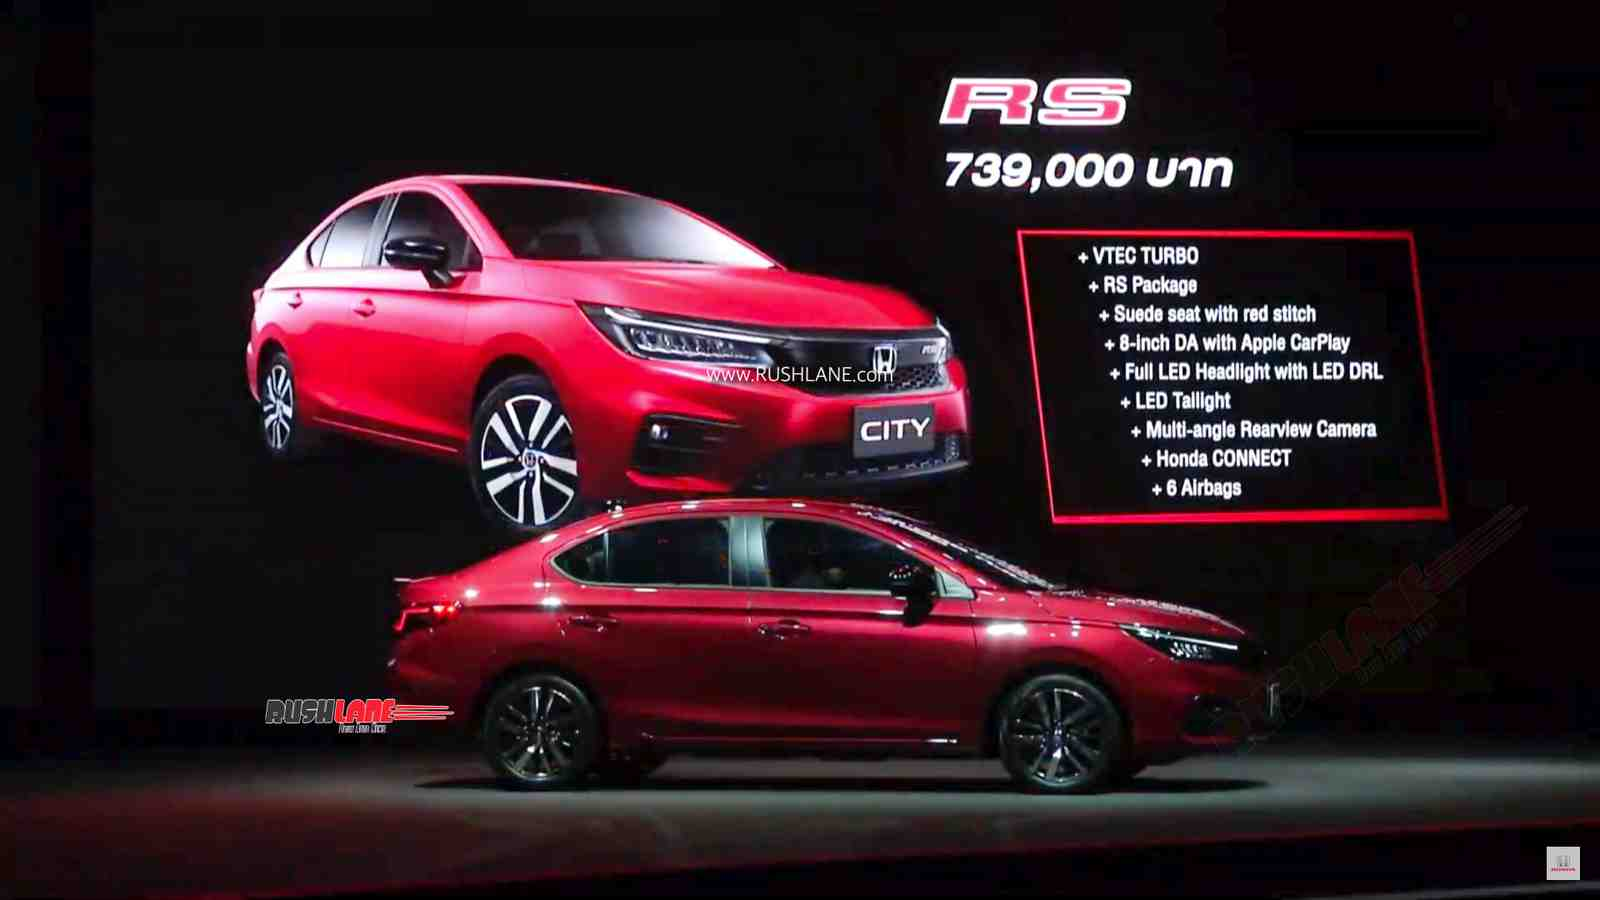 New Honda Motorcycles >> 2020 Honda City RS TURBO 1 liter launched - Price, variants, specs